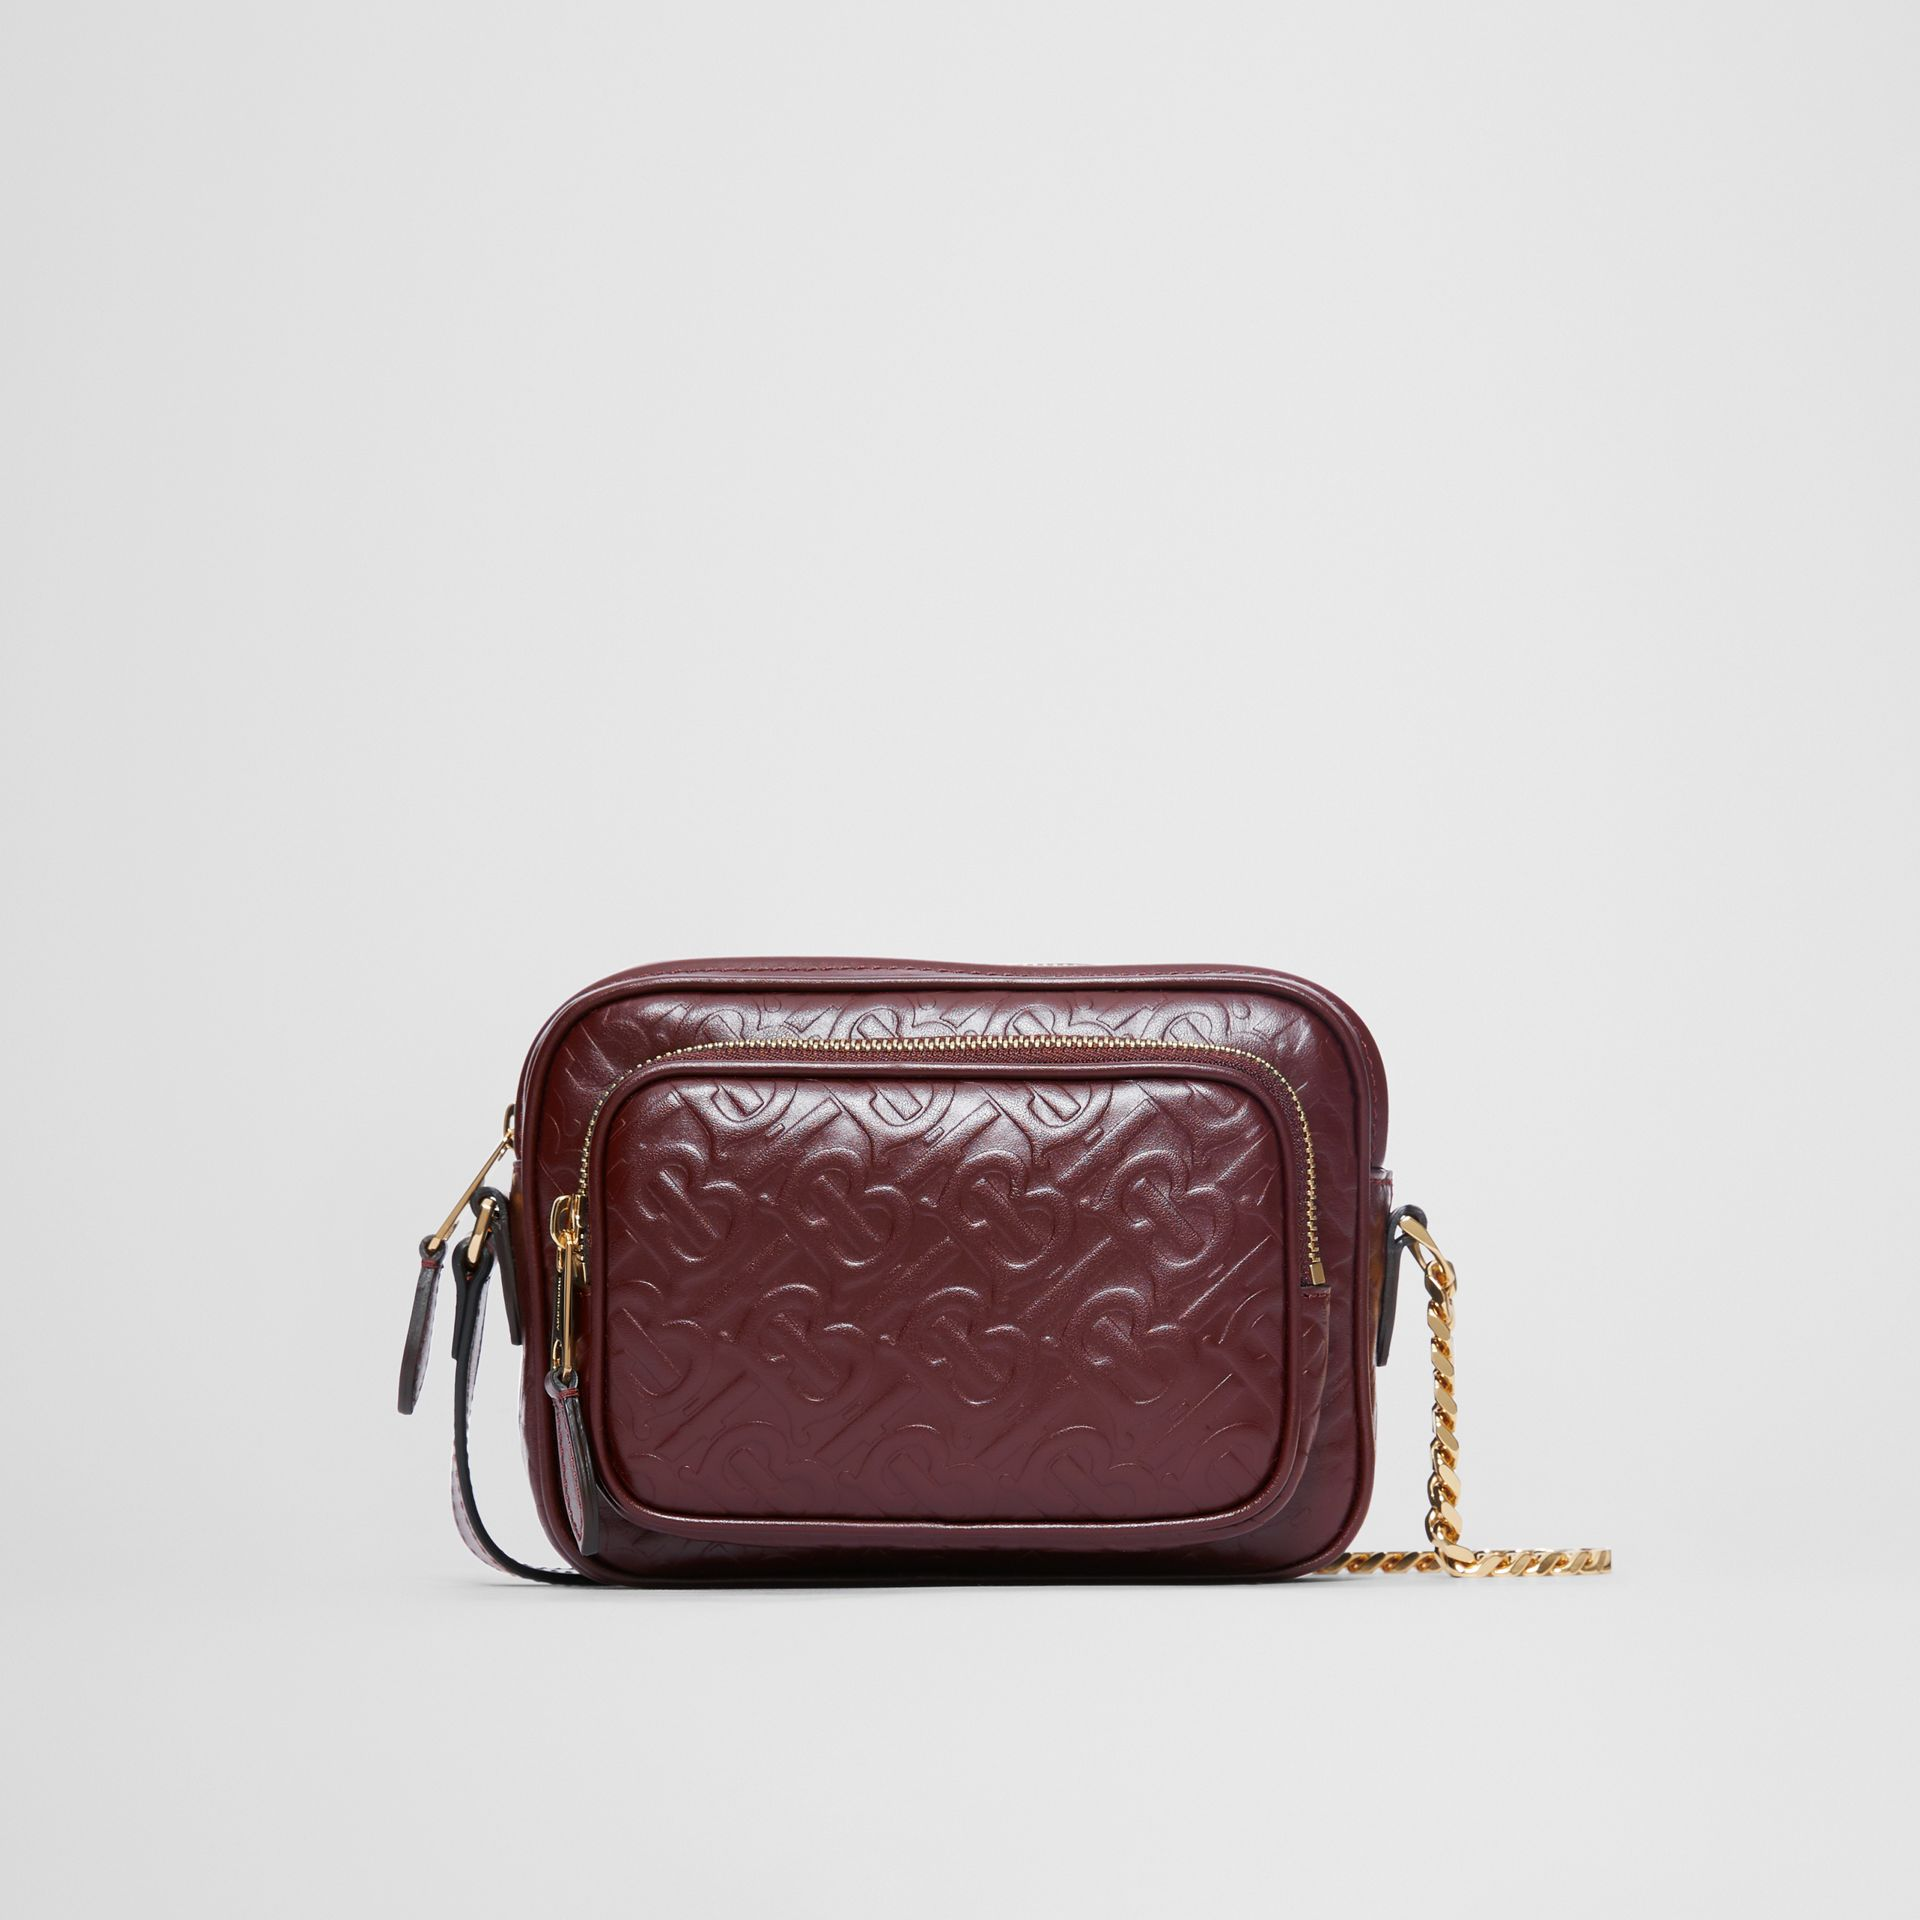 Monogram Leather Camera Bag in Dark Burgundy - Women | Burberry - gallery image 0